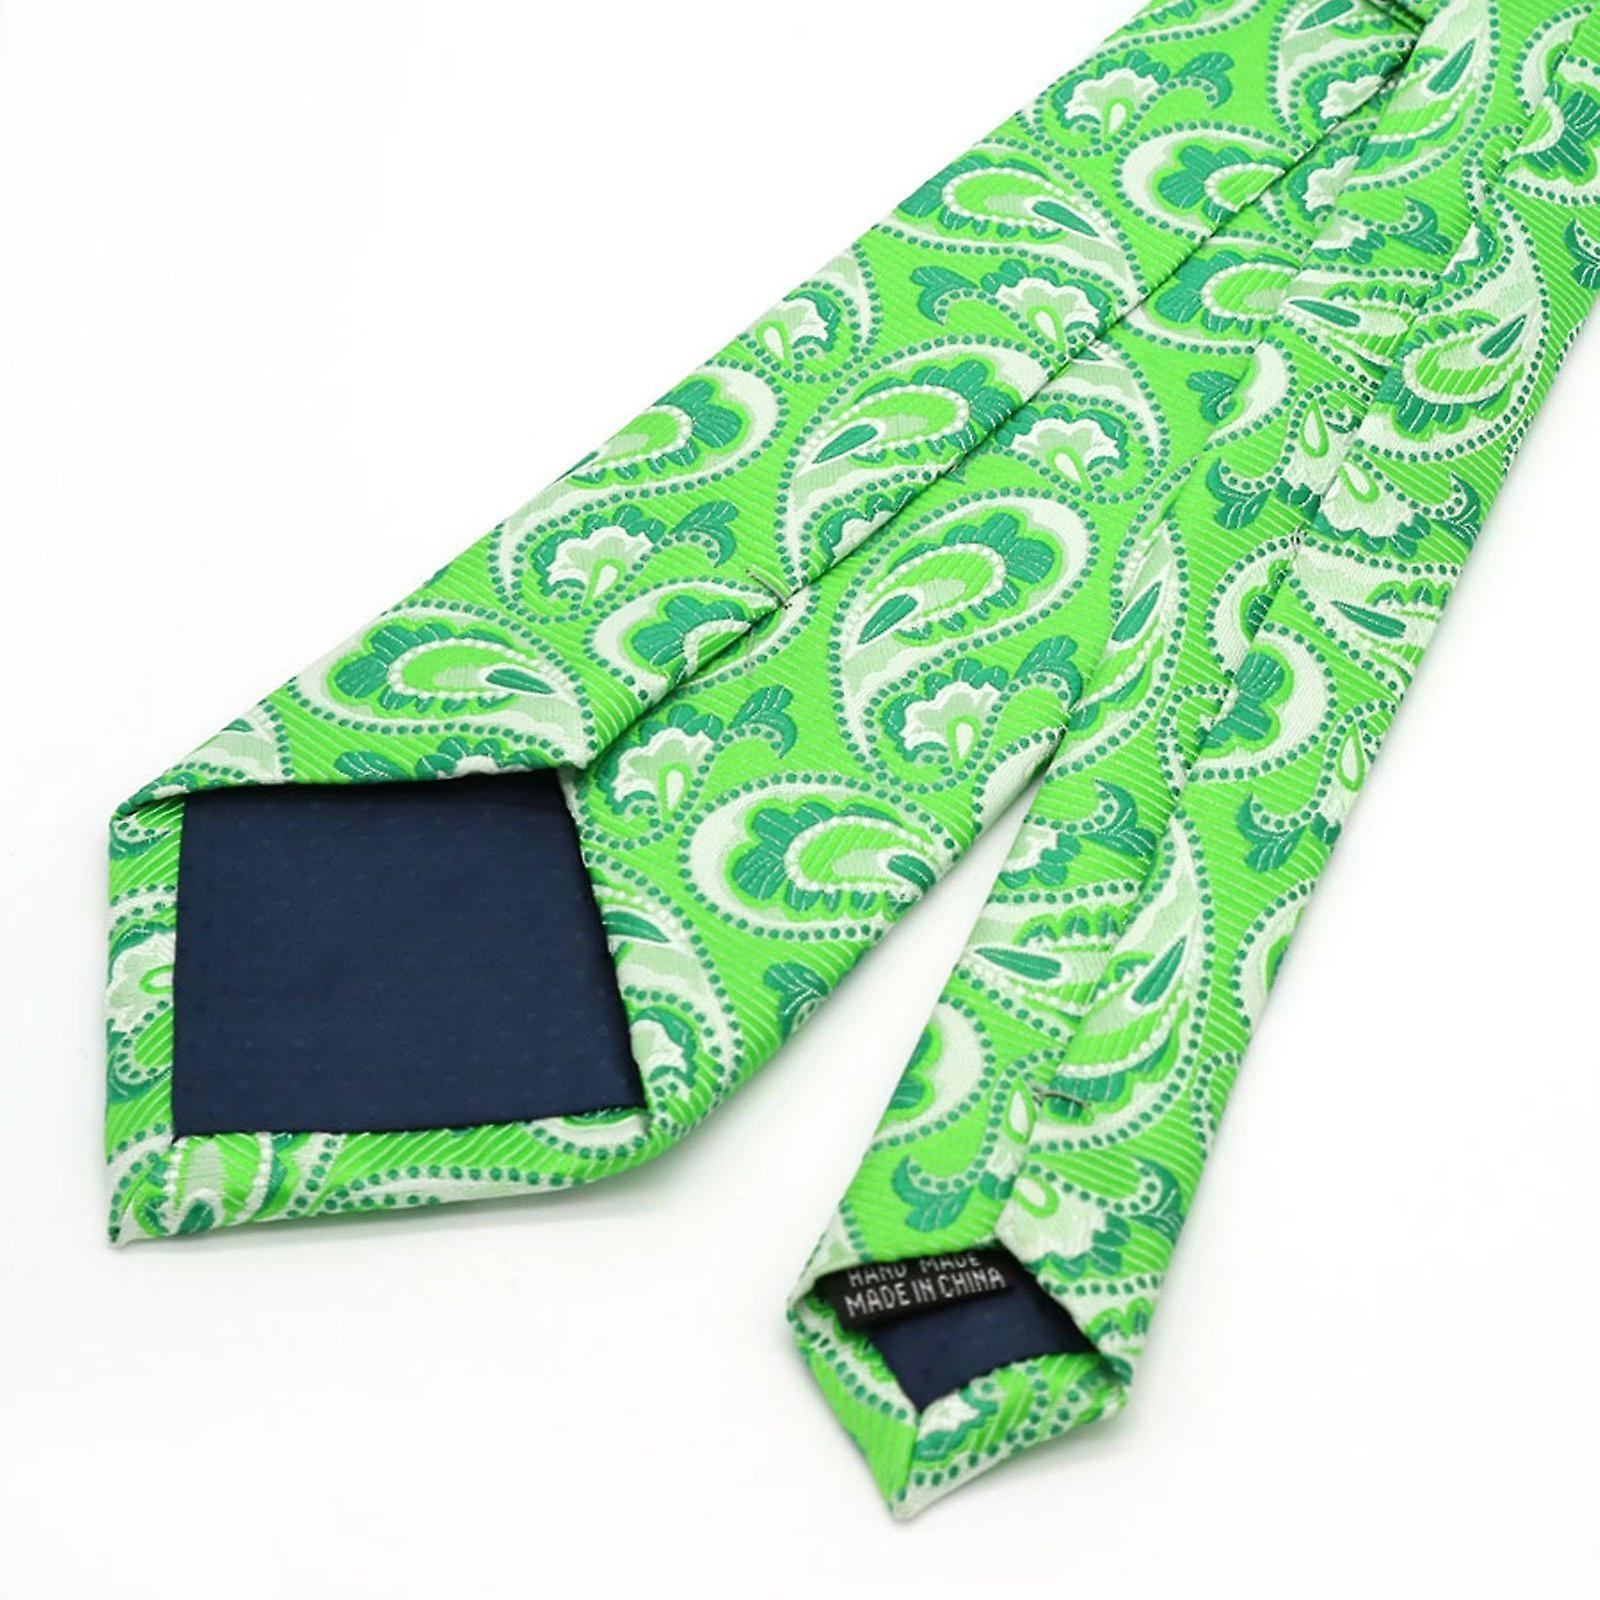 Very bright lime green paisley tie & pocket square set